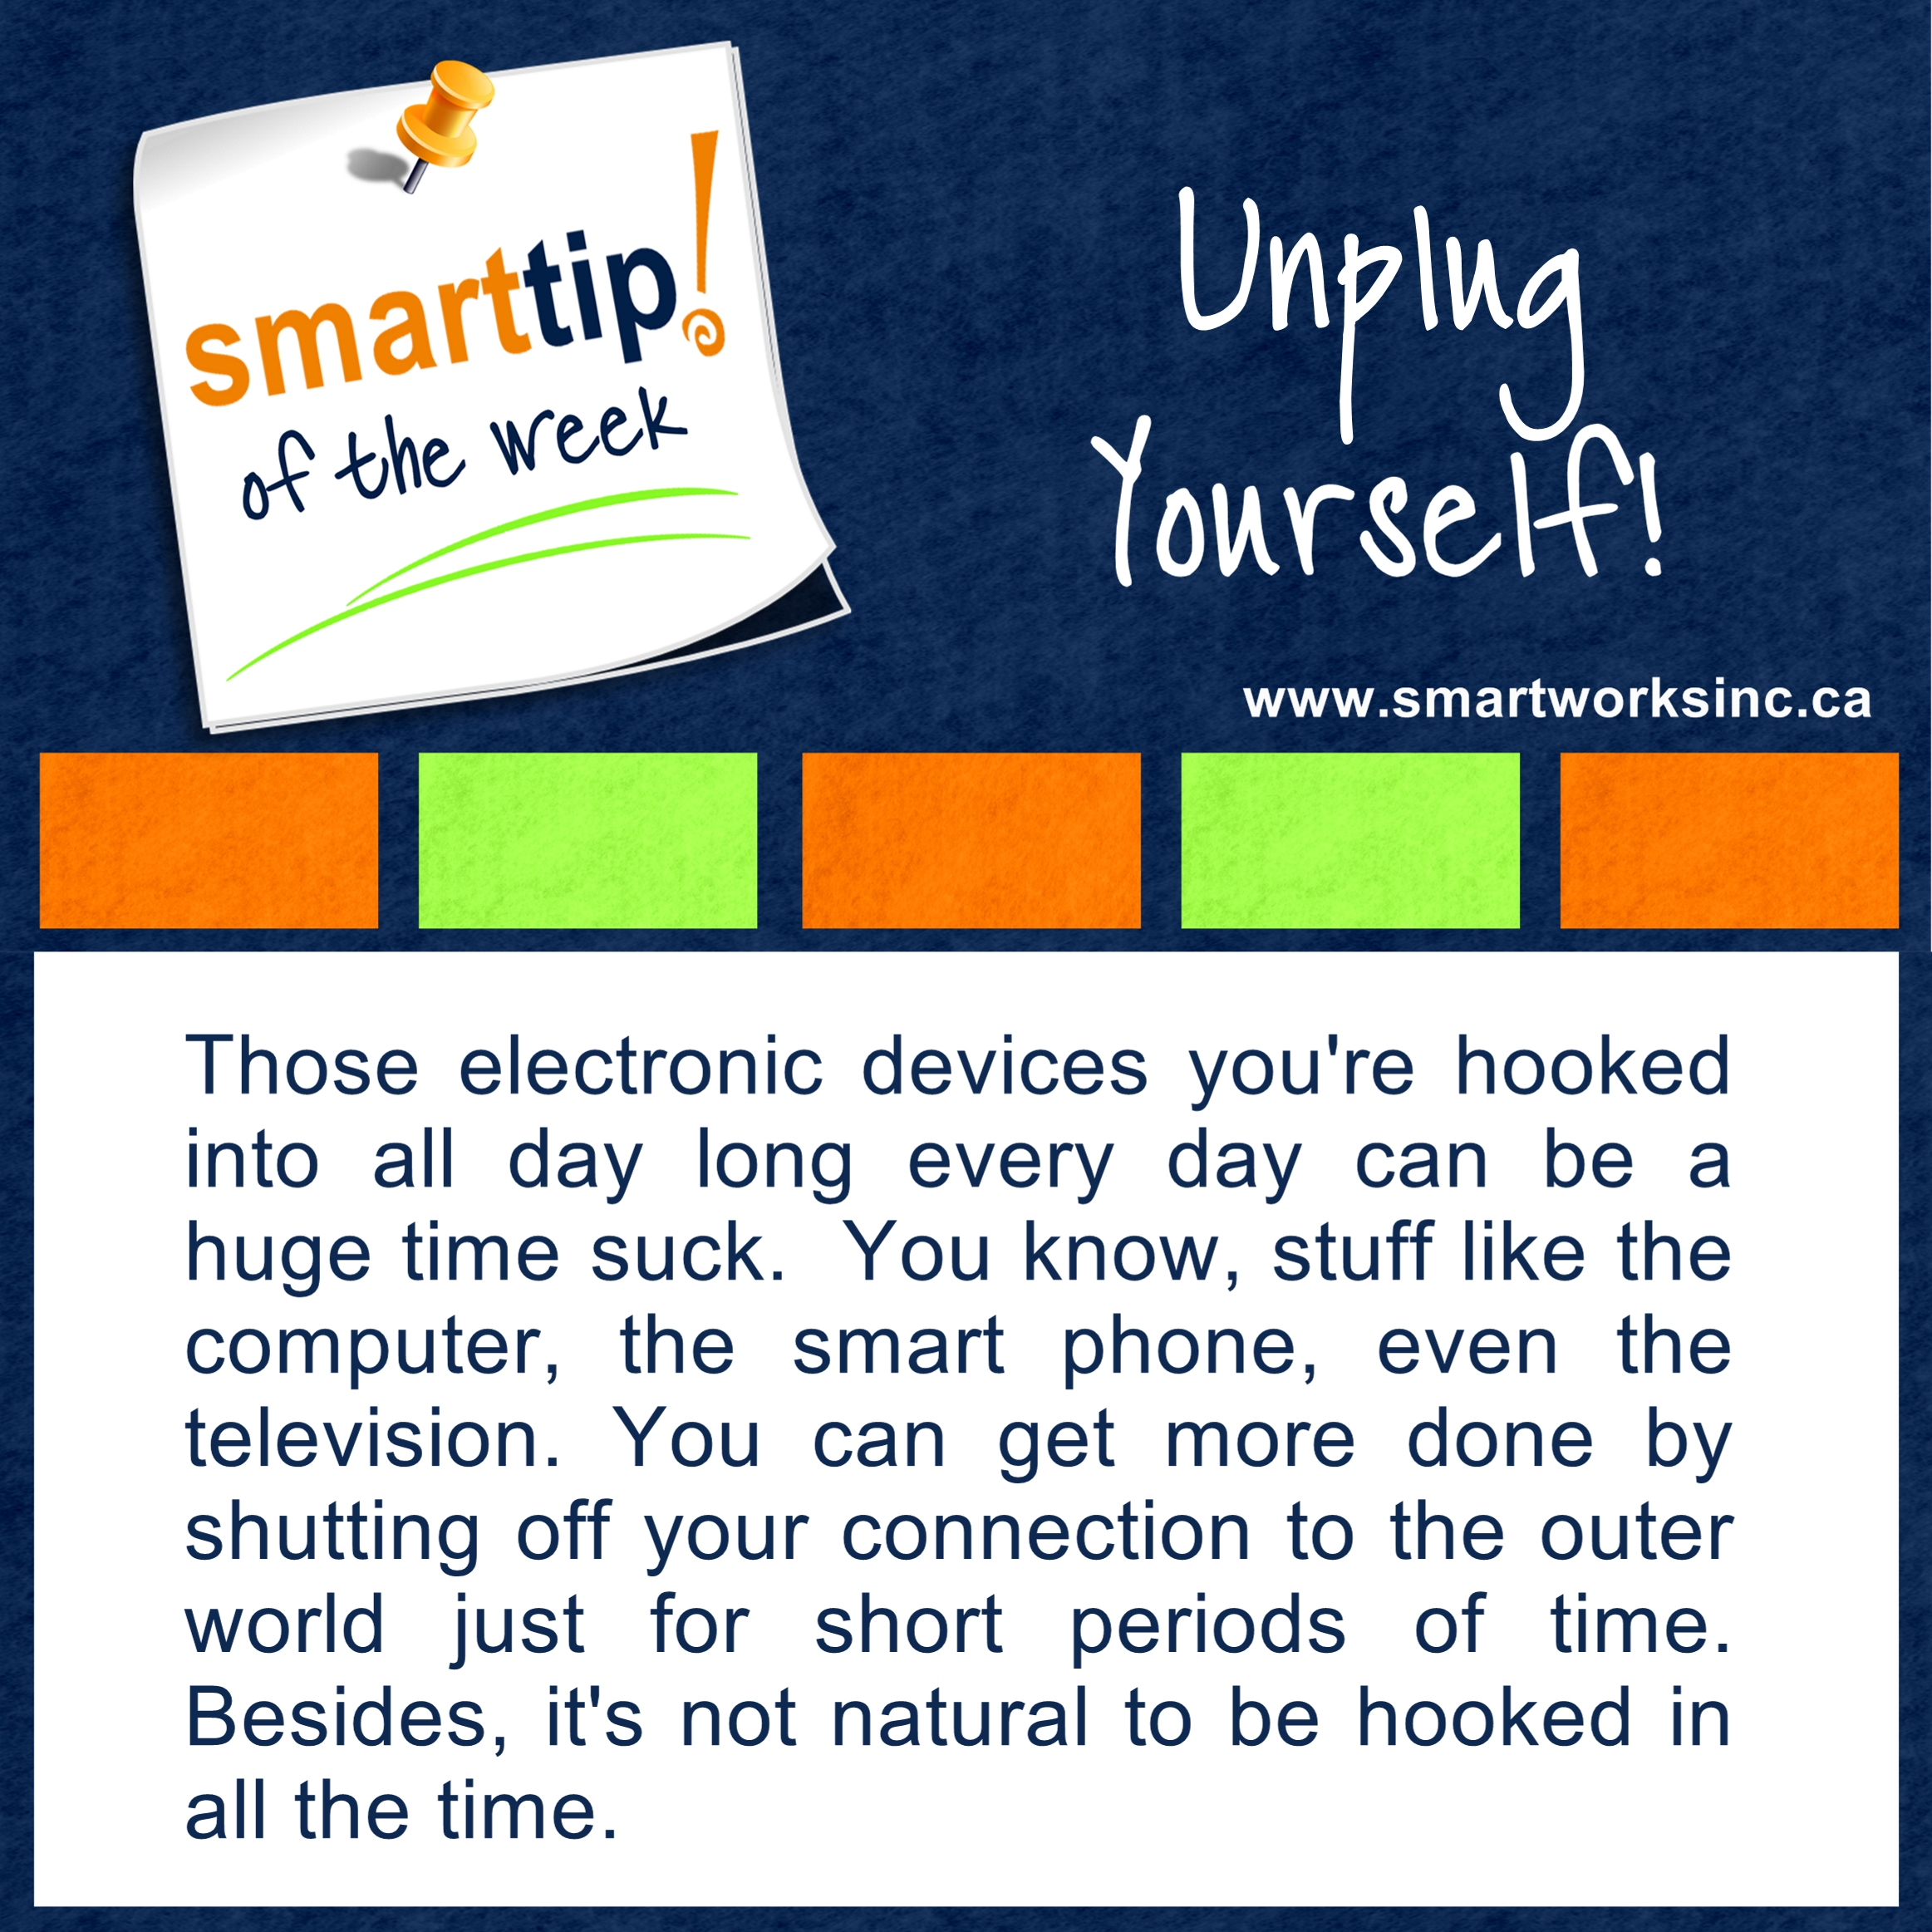 18-unplug-yourself